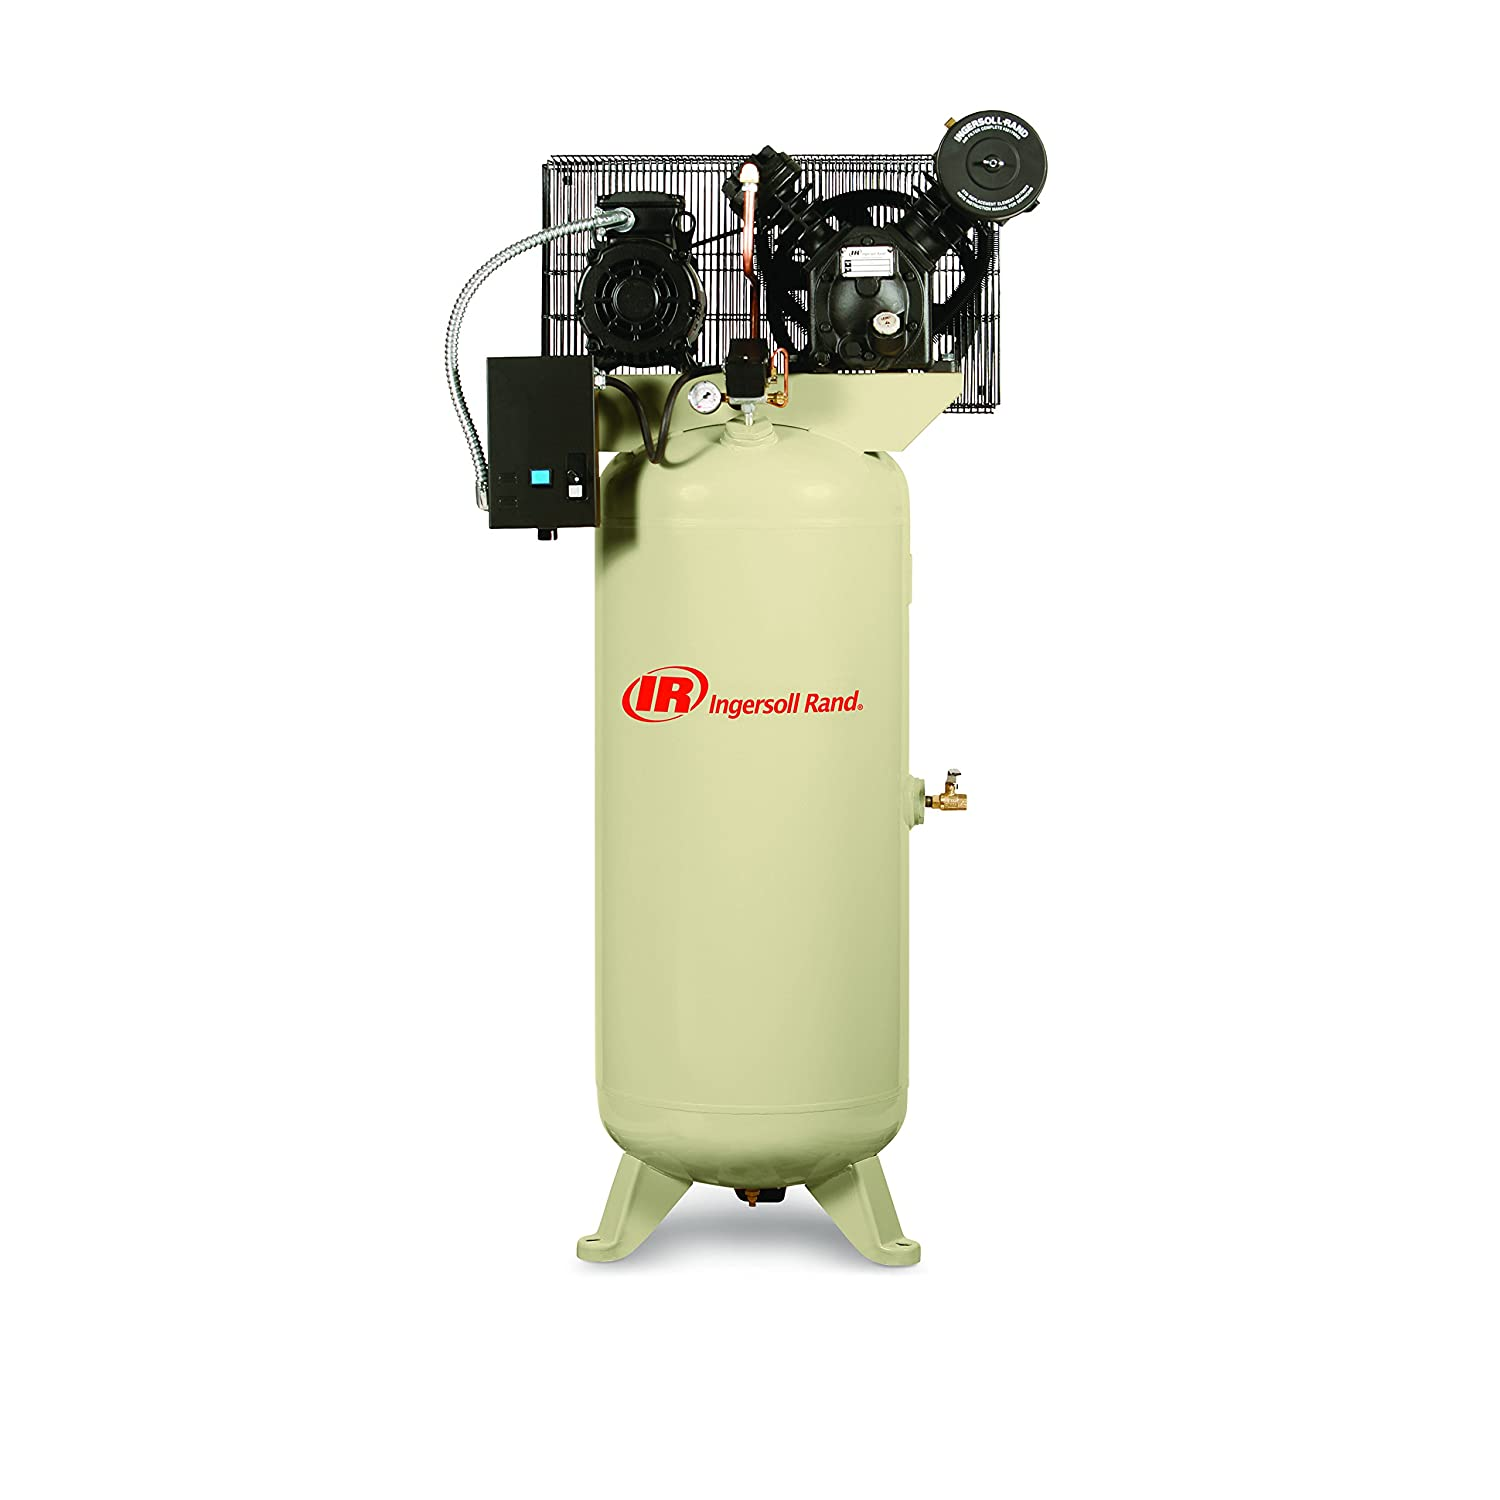 2340L5 5 HP 60 Gallon Two-Stage Air Compressor (230V, Single Phase) Ingersoll Rand 2340L5-V